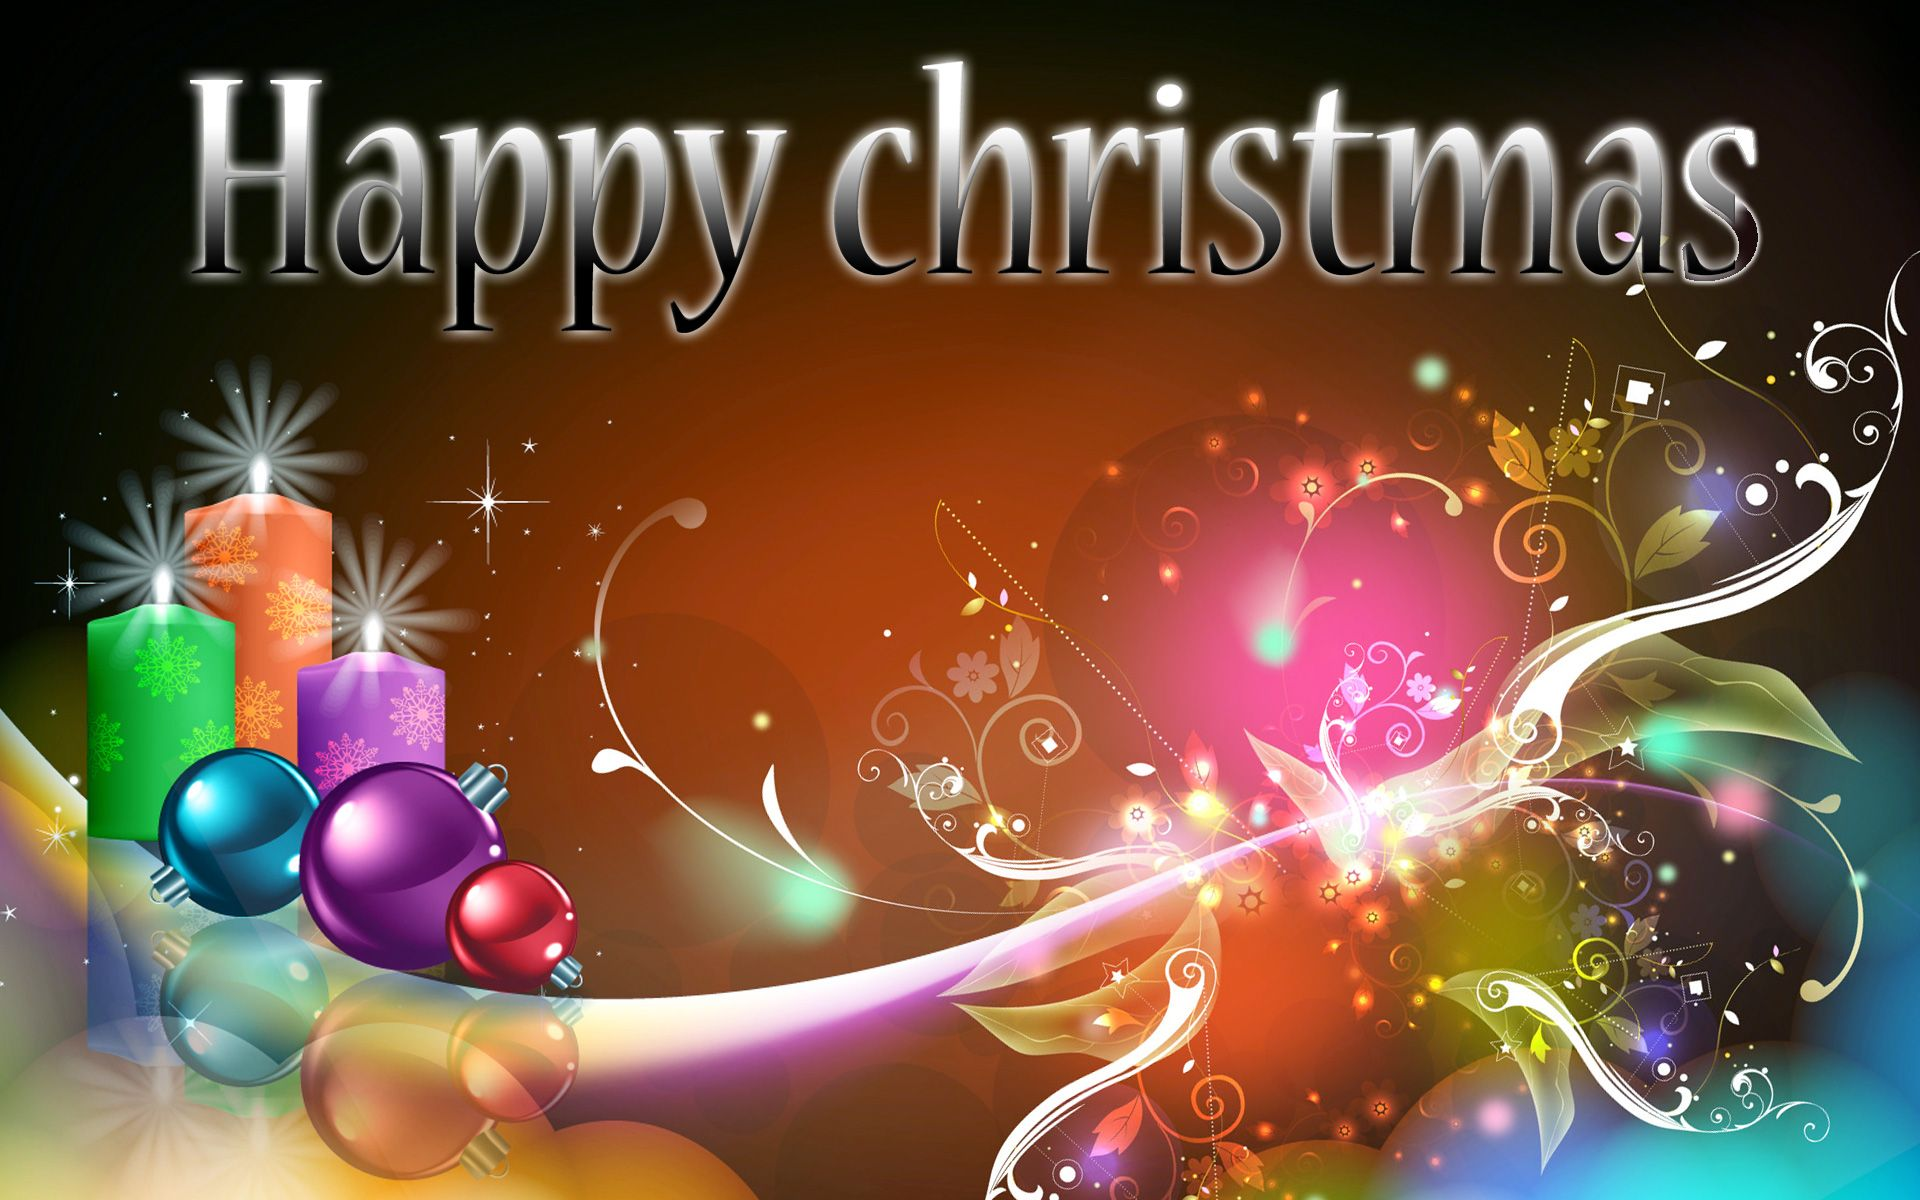 I hope that everyone will have a Merry Christmas, Happy